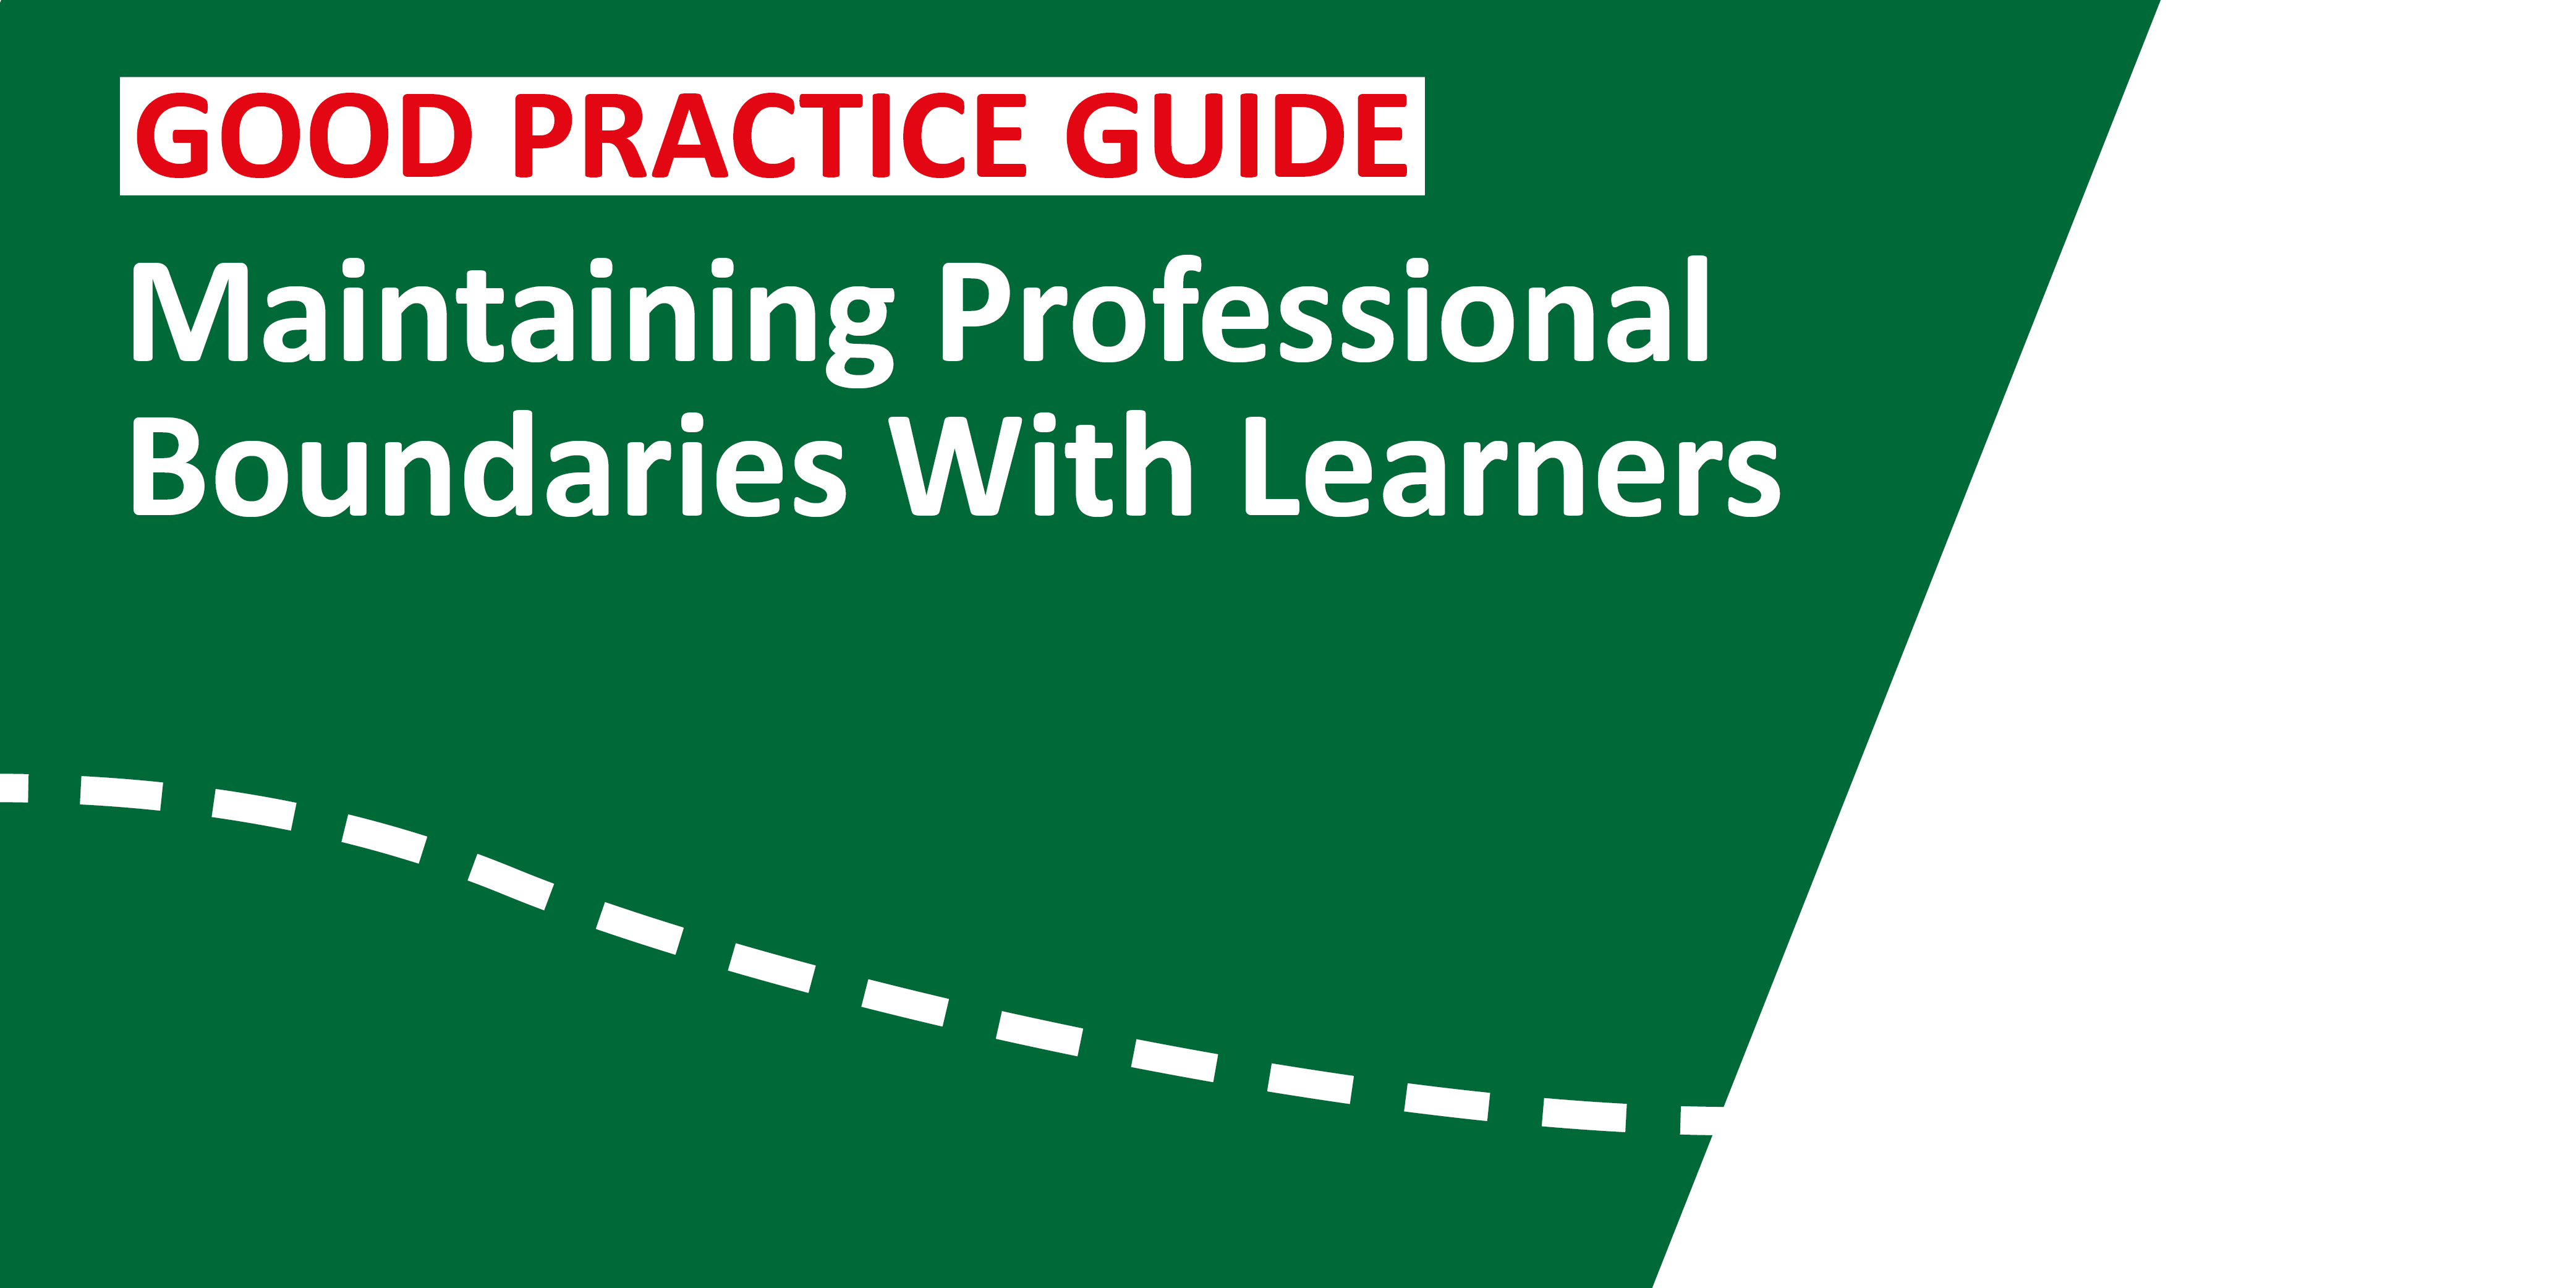 Guide to good practice in maintaining professional boundaries with learners published